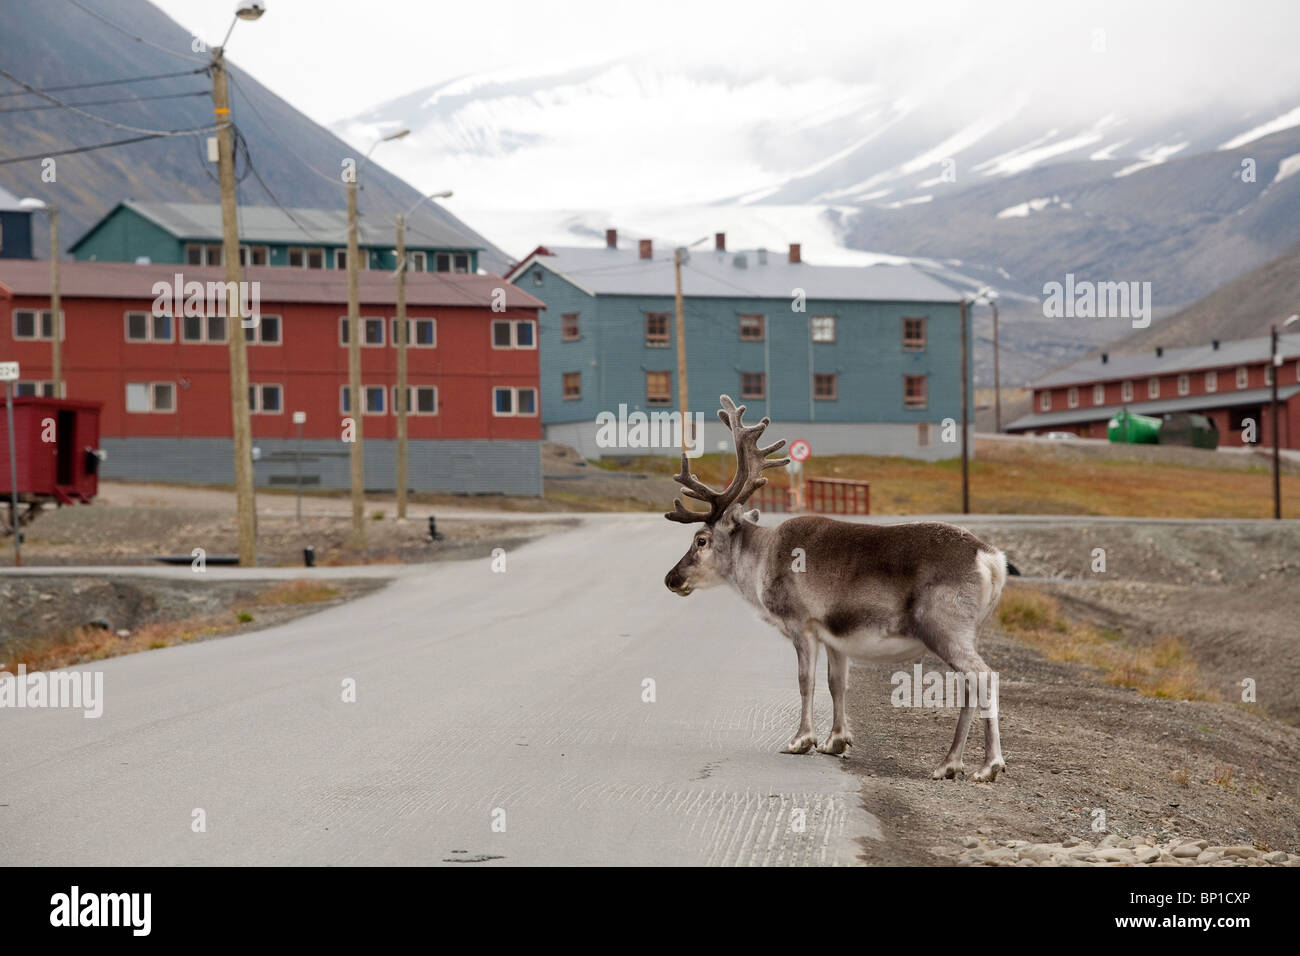 Image shows a reindeer  in Longyearbyen, the largest settlement of Svalbard archipelago, Norway.Photo:Jeff Gilbert Stock Photo